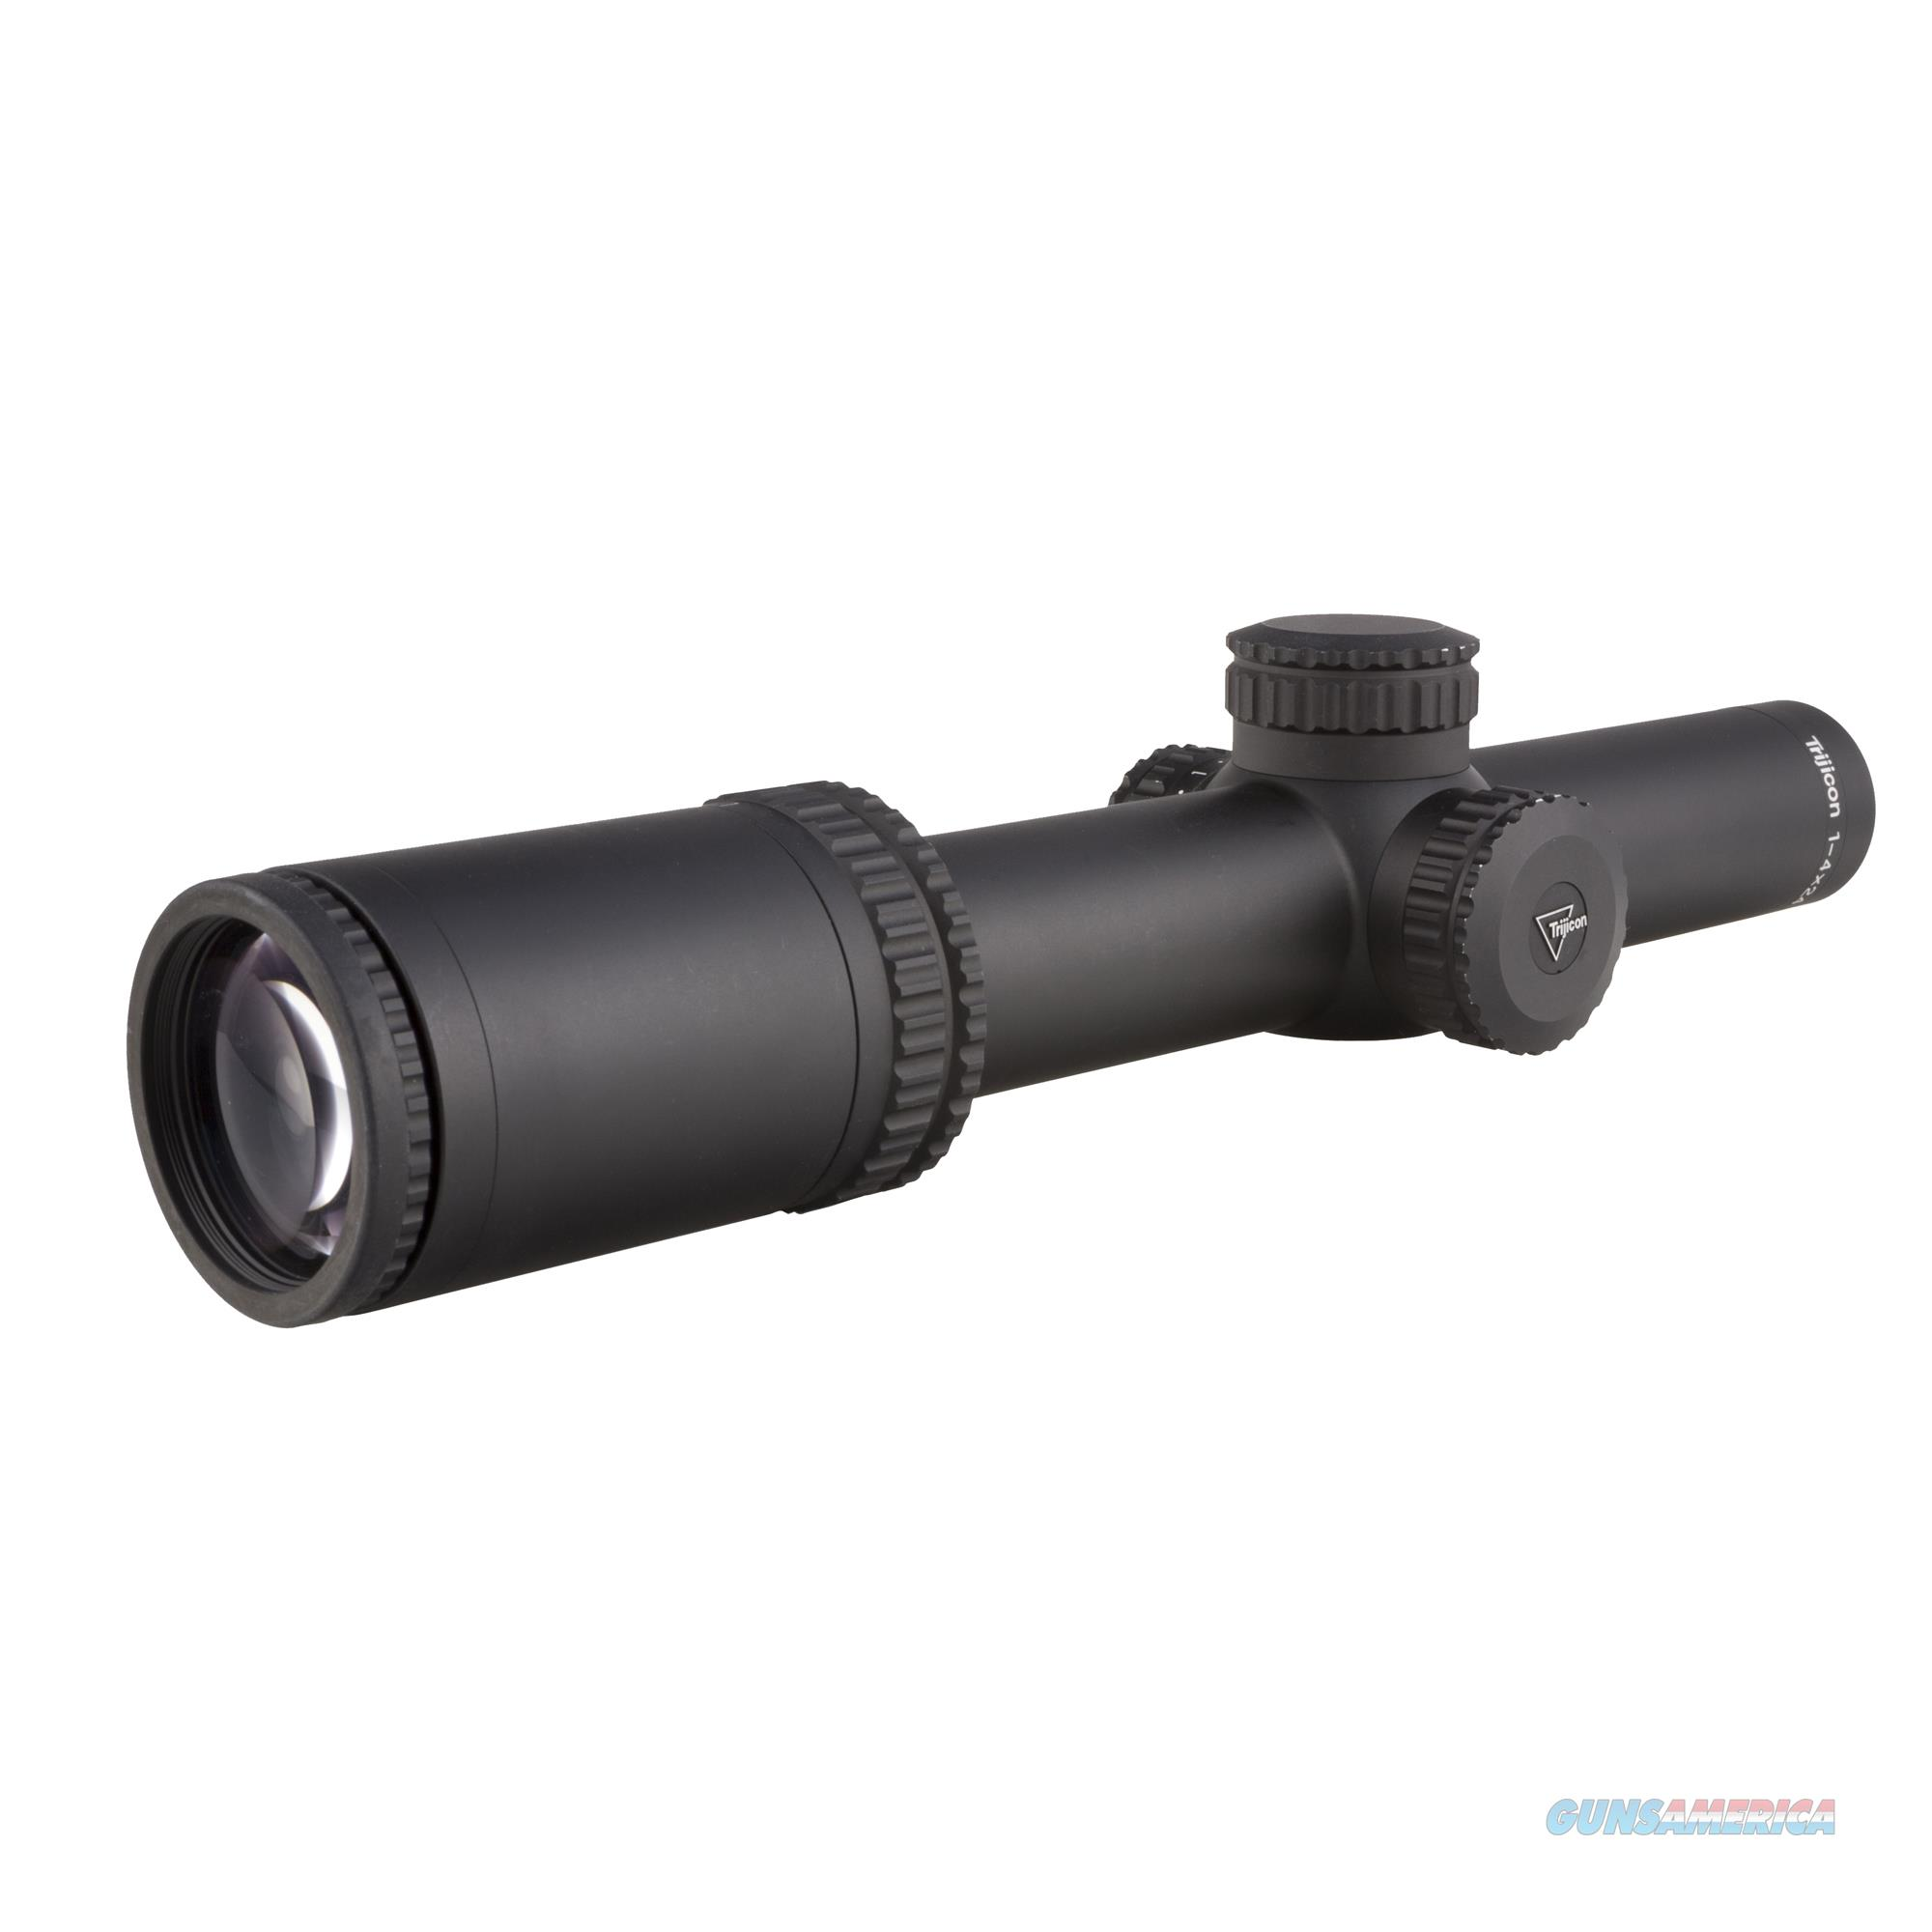 Trijicon Accupower 1-4X24mm Riflescope RS24-C-1900005  Non-Guns > Scopes/Mounts/Rings & Optics > Rifle Scopes > Variable Focal Length